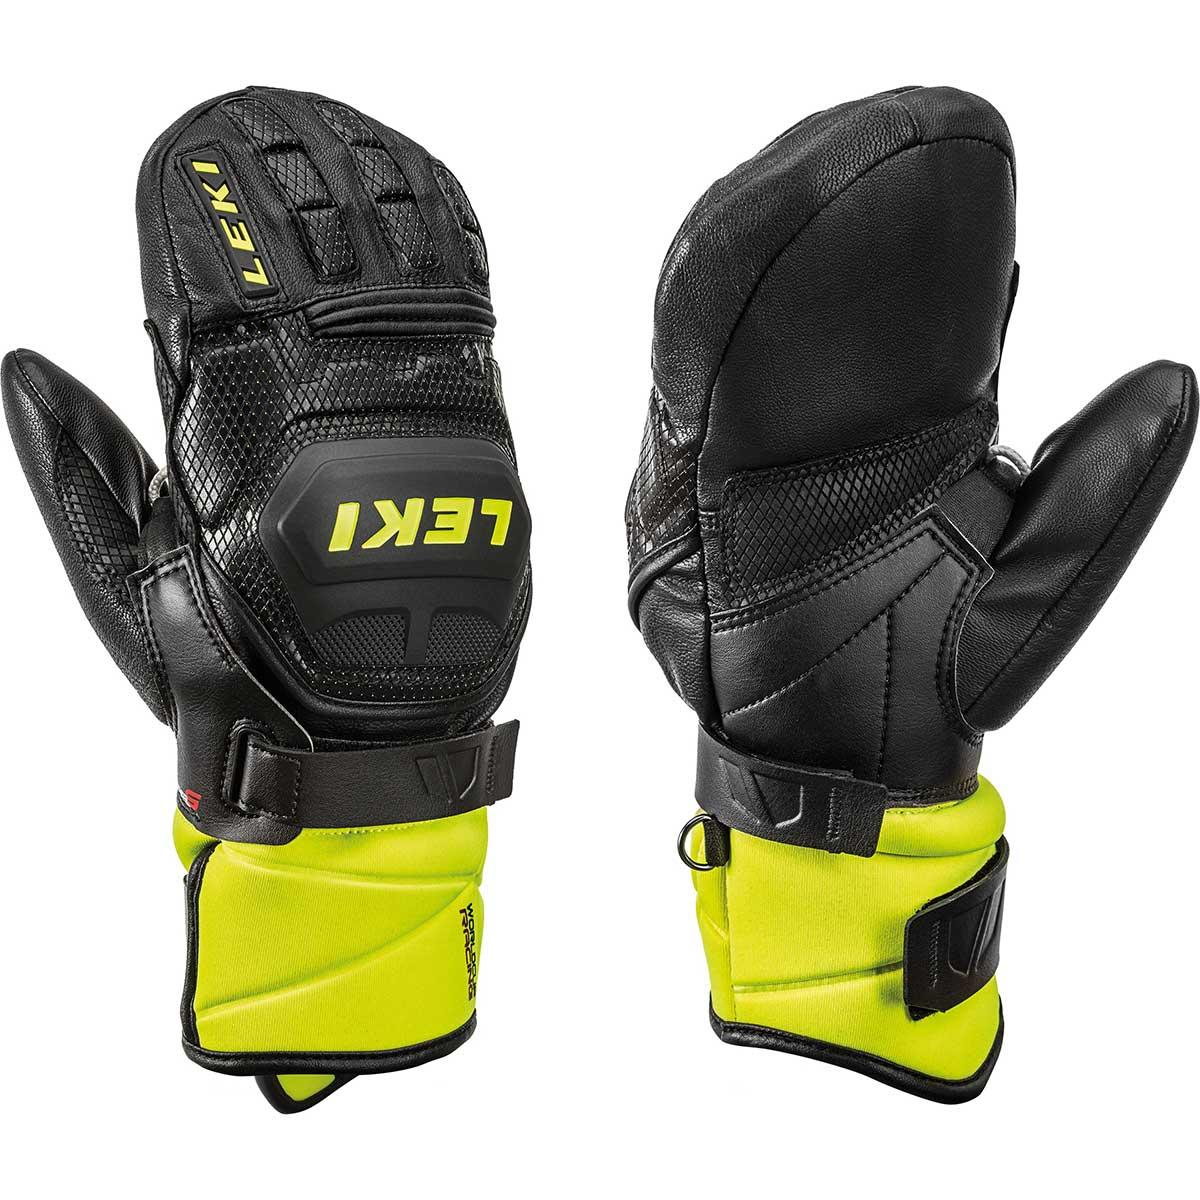 Leki Worldcup Race Flex S Mitt in black and lemon